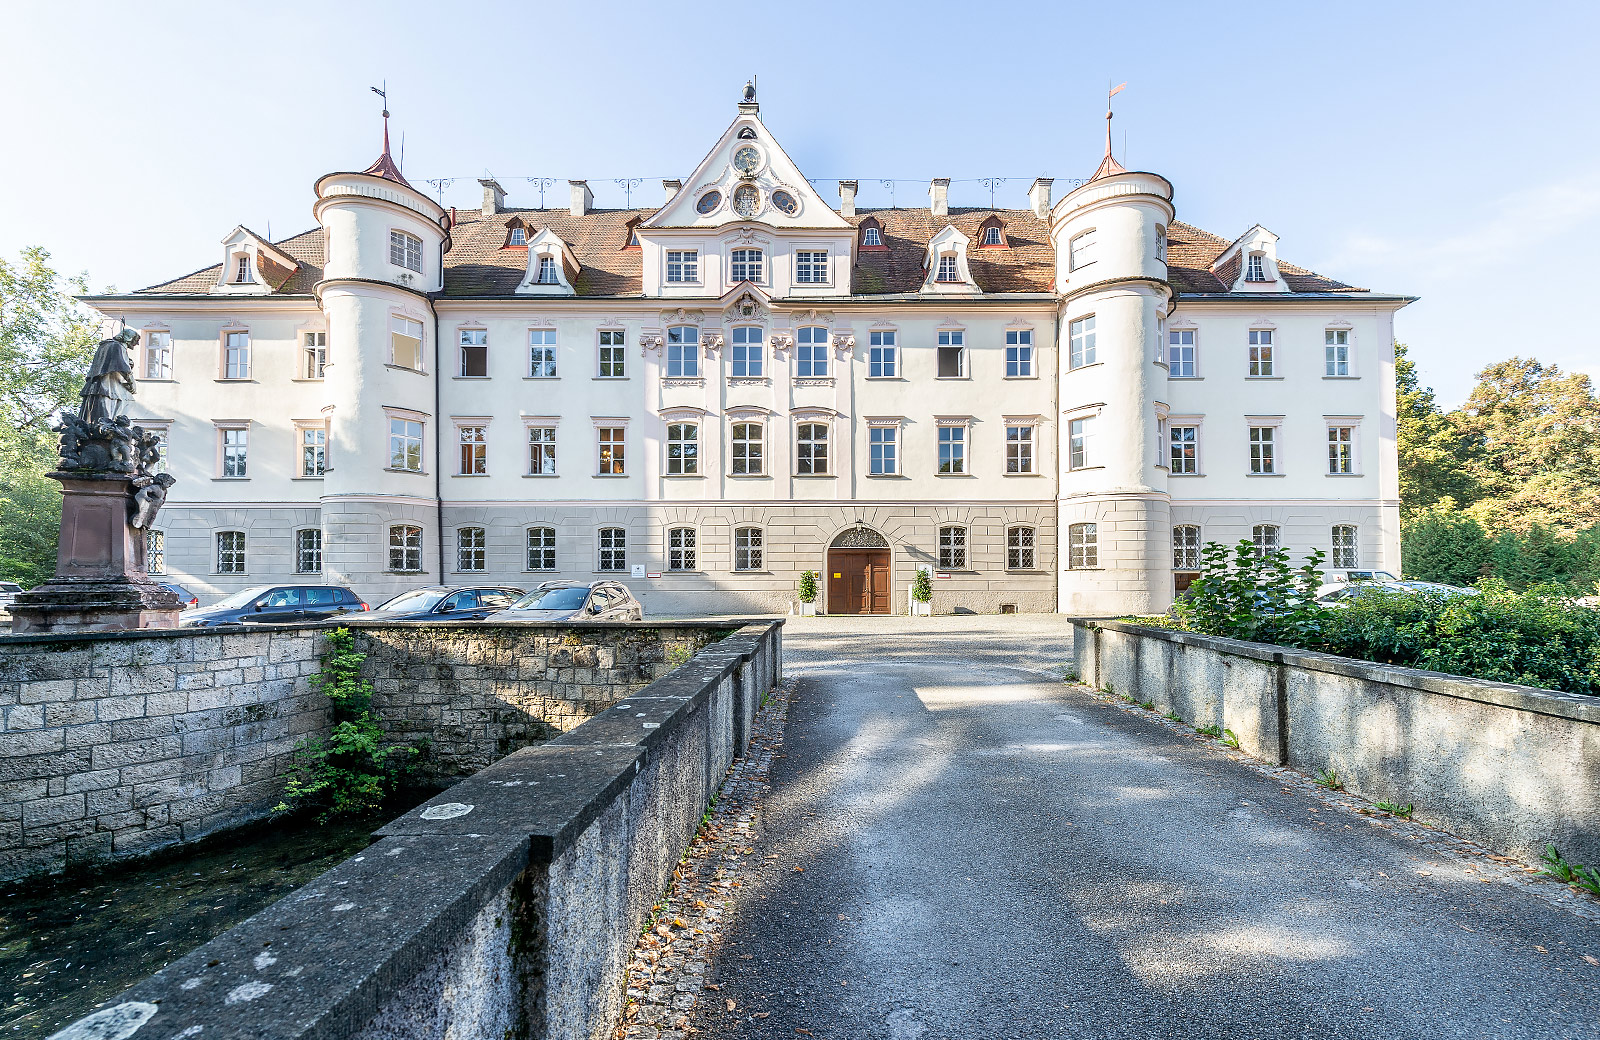 Exterior view of the water castle Bad Waldsee